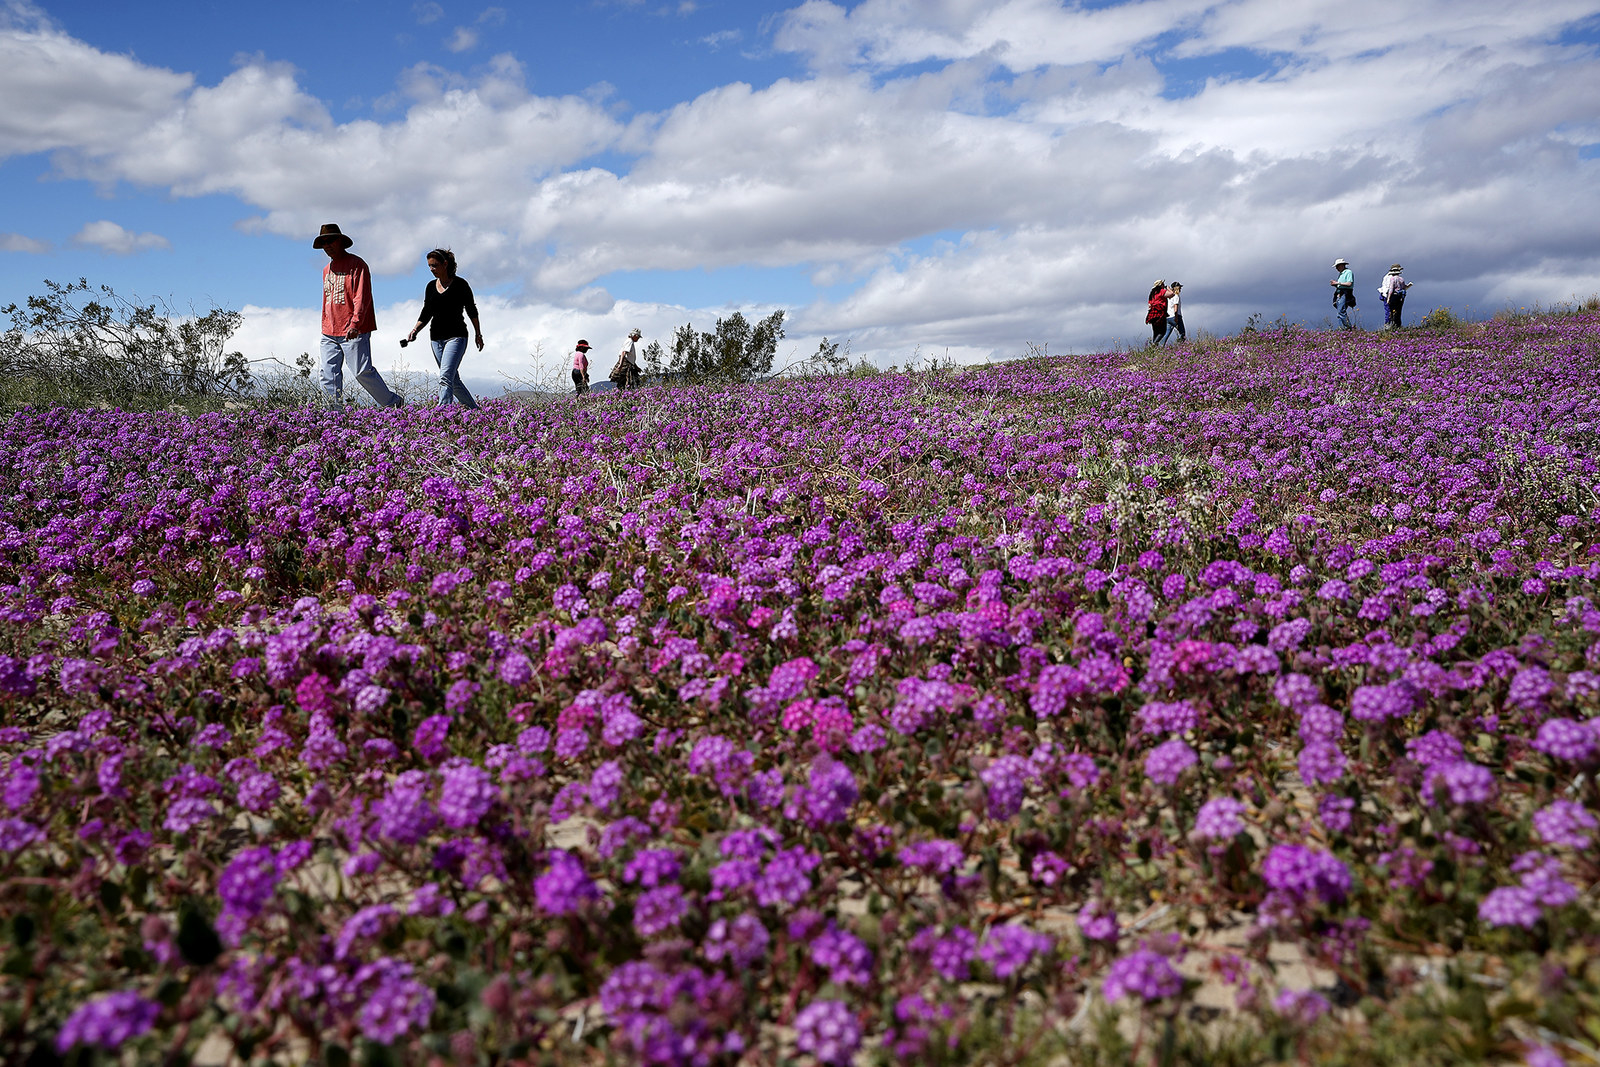 People walk among wildflowers in bloom, March 6.